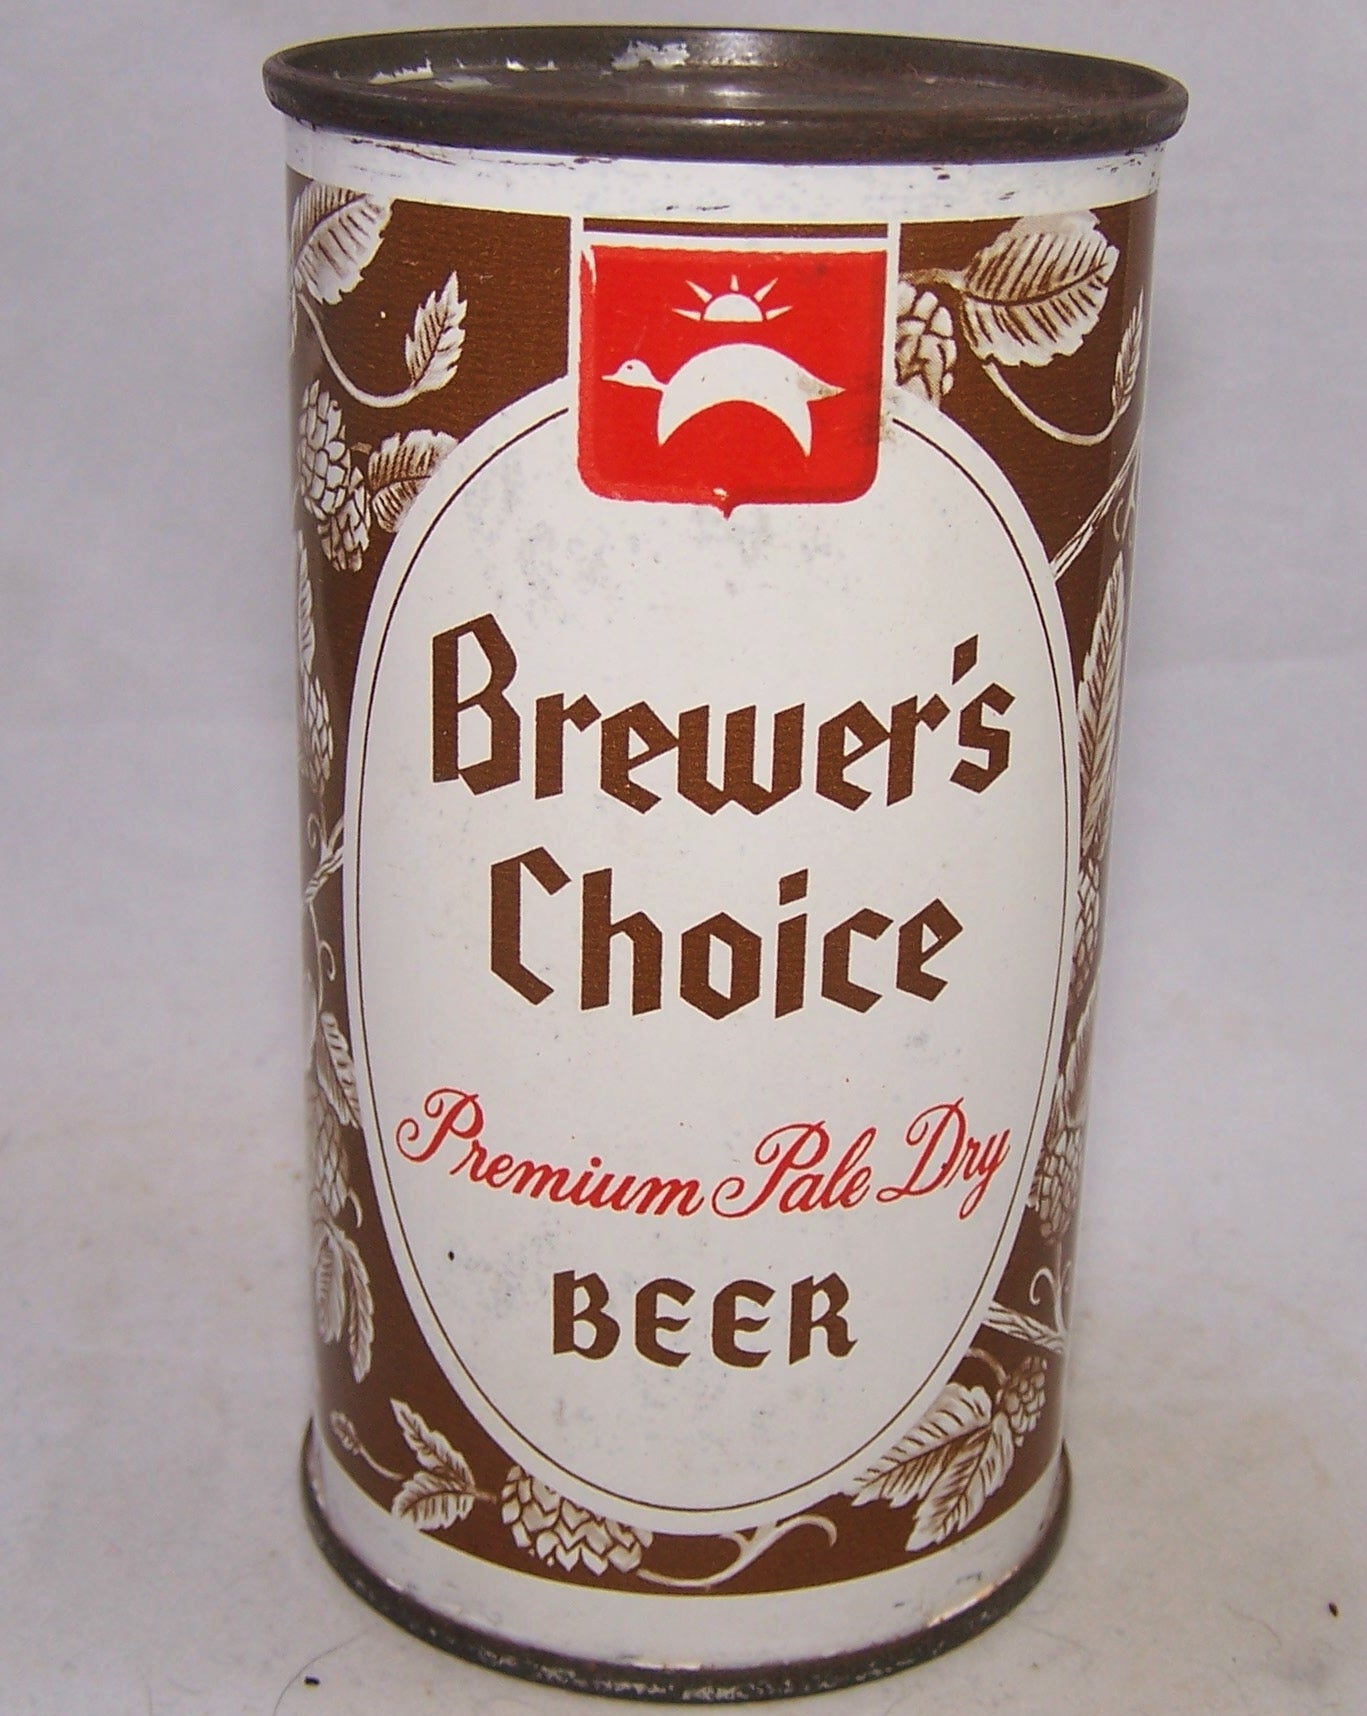 Brewer's Choice Premium Pale Dry Beer, USBC 42-04, Grade 1 Sold on 2/11/18